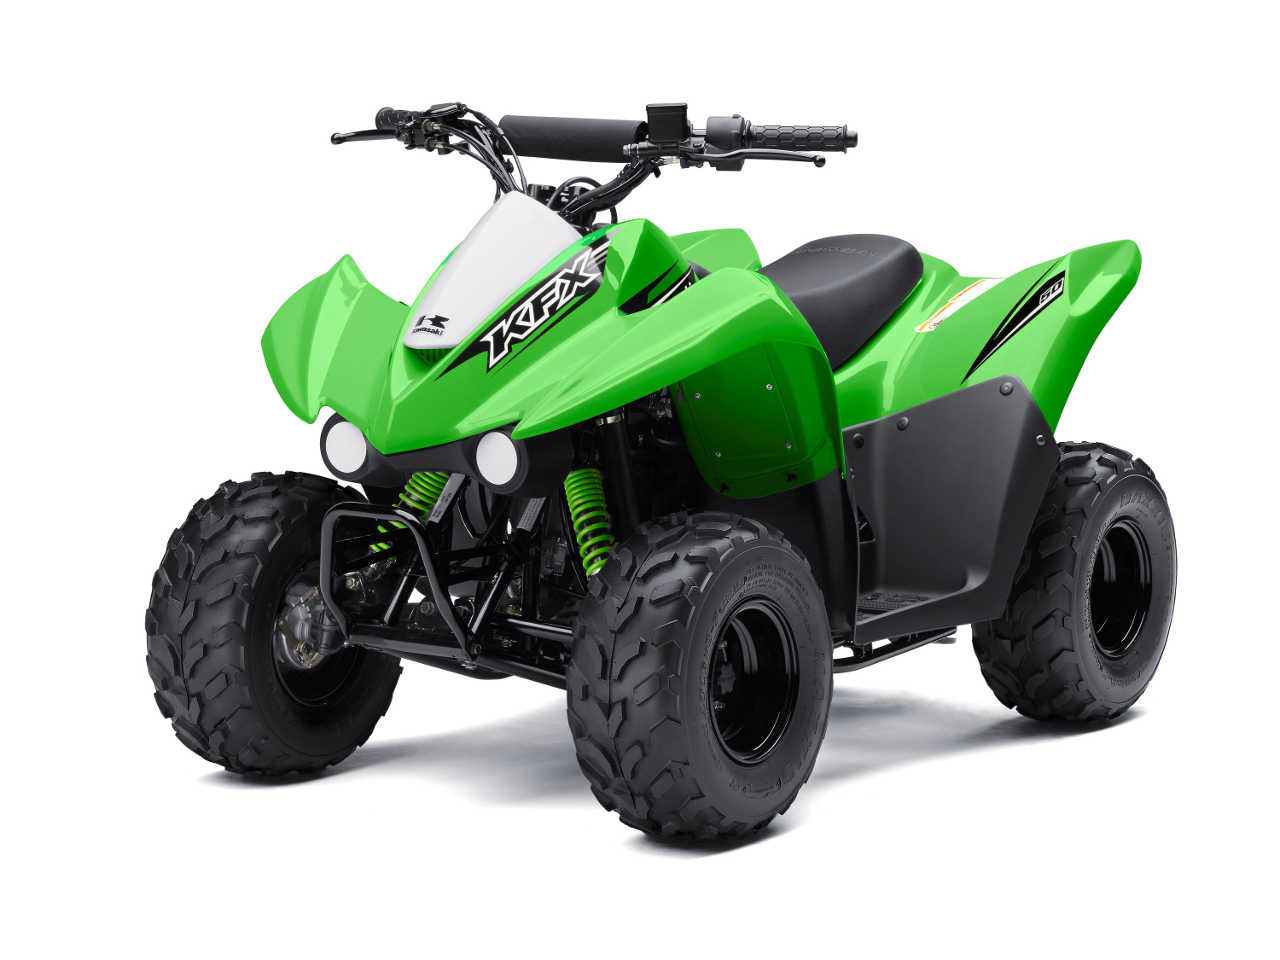 2016.kawasaki.kfx50.green_.front left.studio 2016 kawasaki brute force atv model range atv illustrated kawasaki kfx 50 wiring diagram at mifinder.co